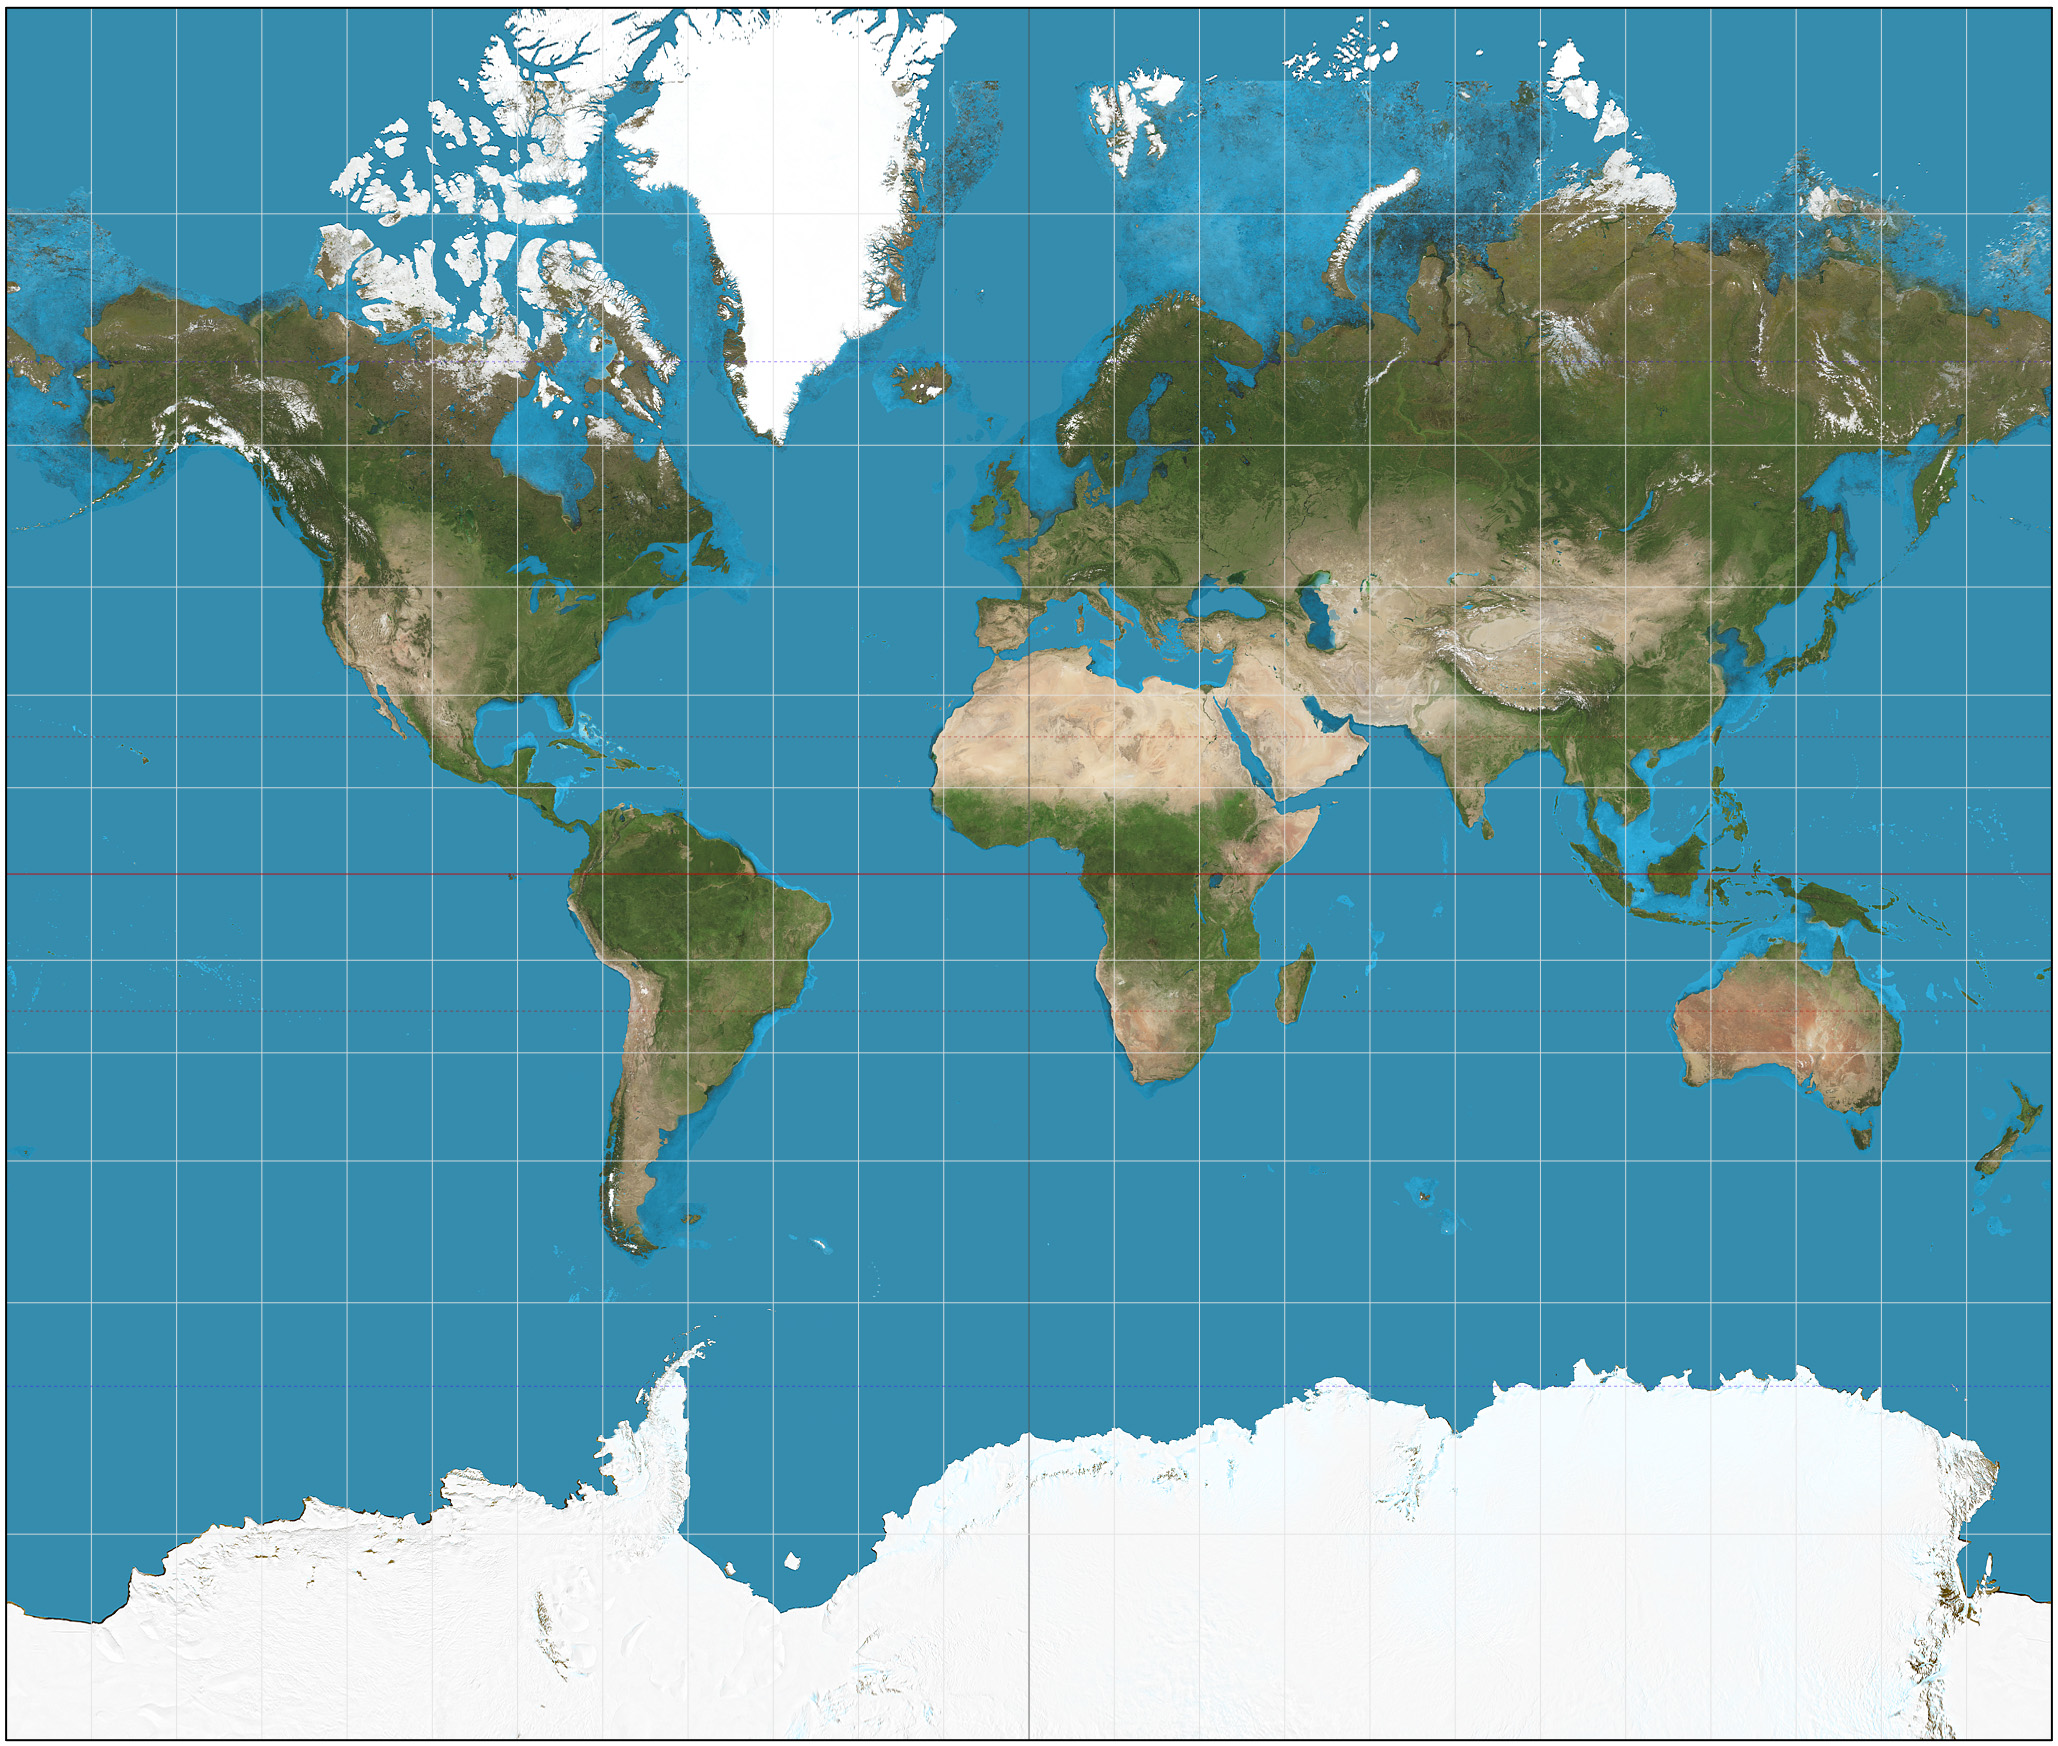 Boston Public Schools Changed to a More Accurate World Map